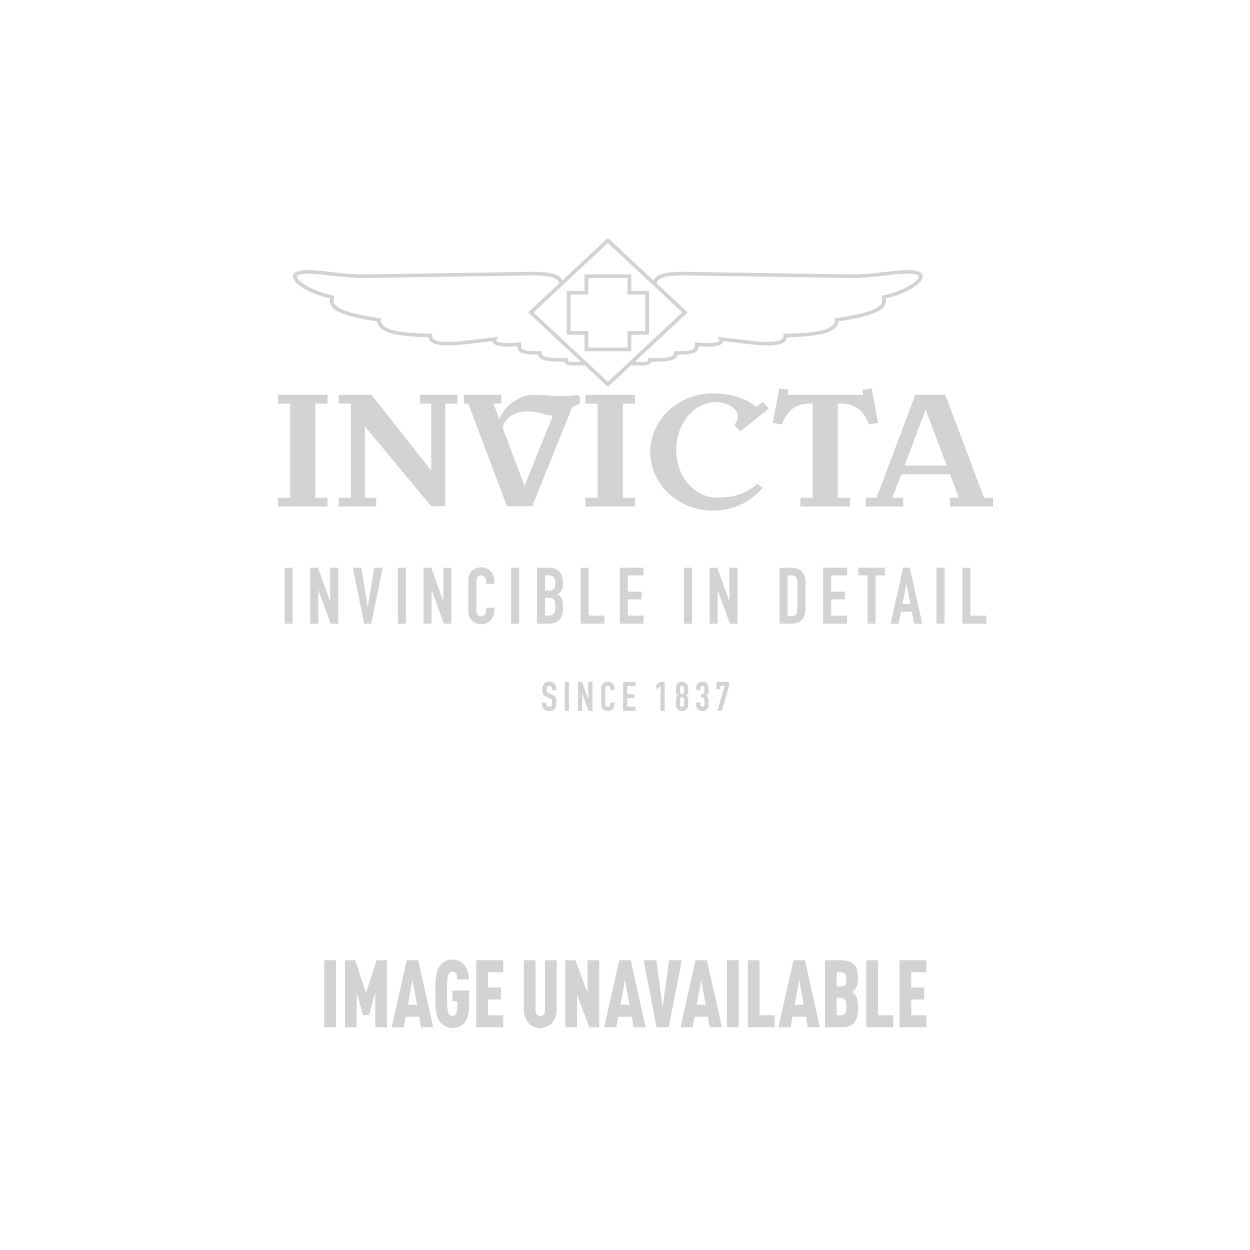 Invicta 21cm Men's Bracelets in Black, Blue - Model J0279